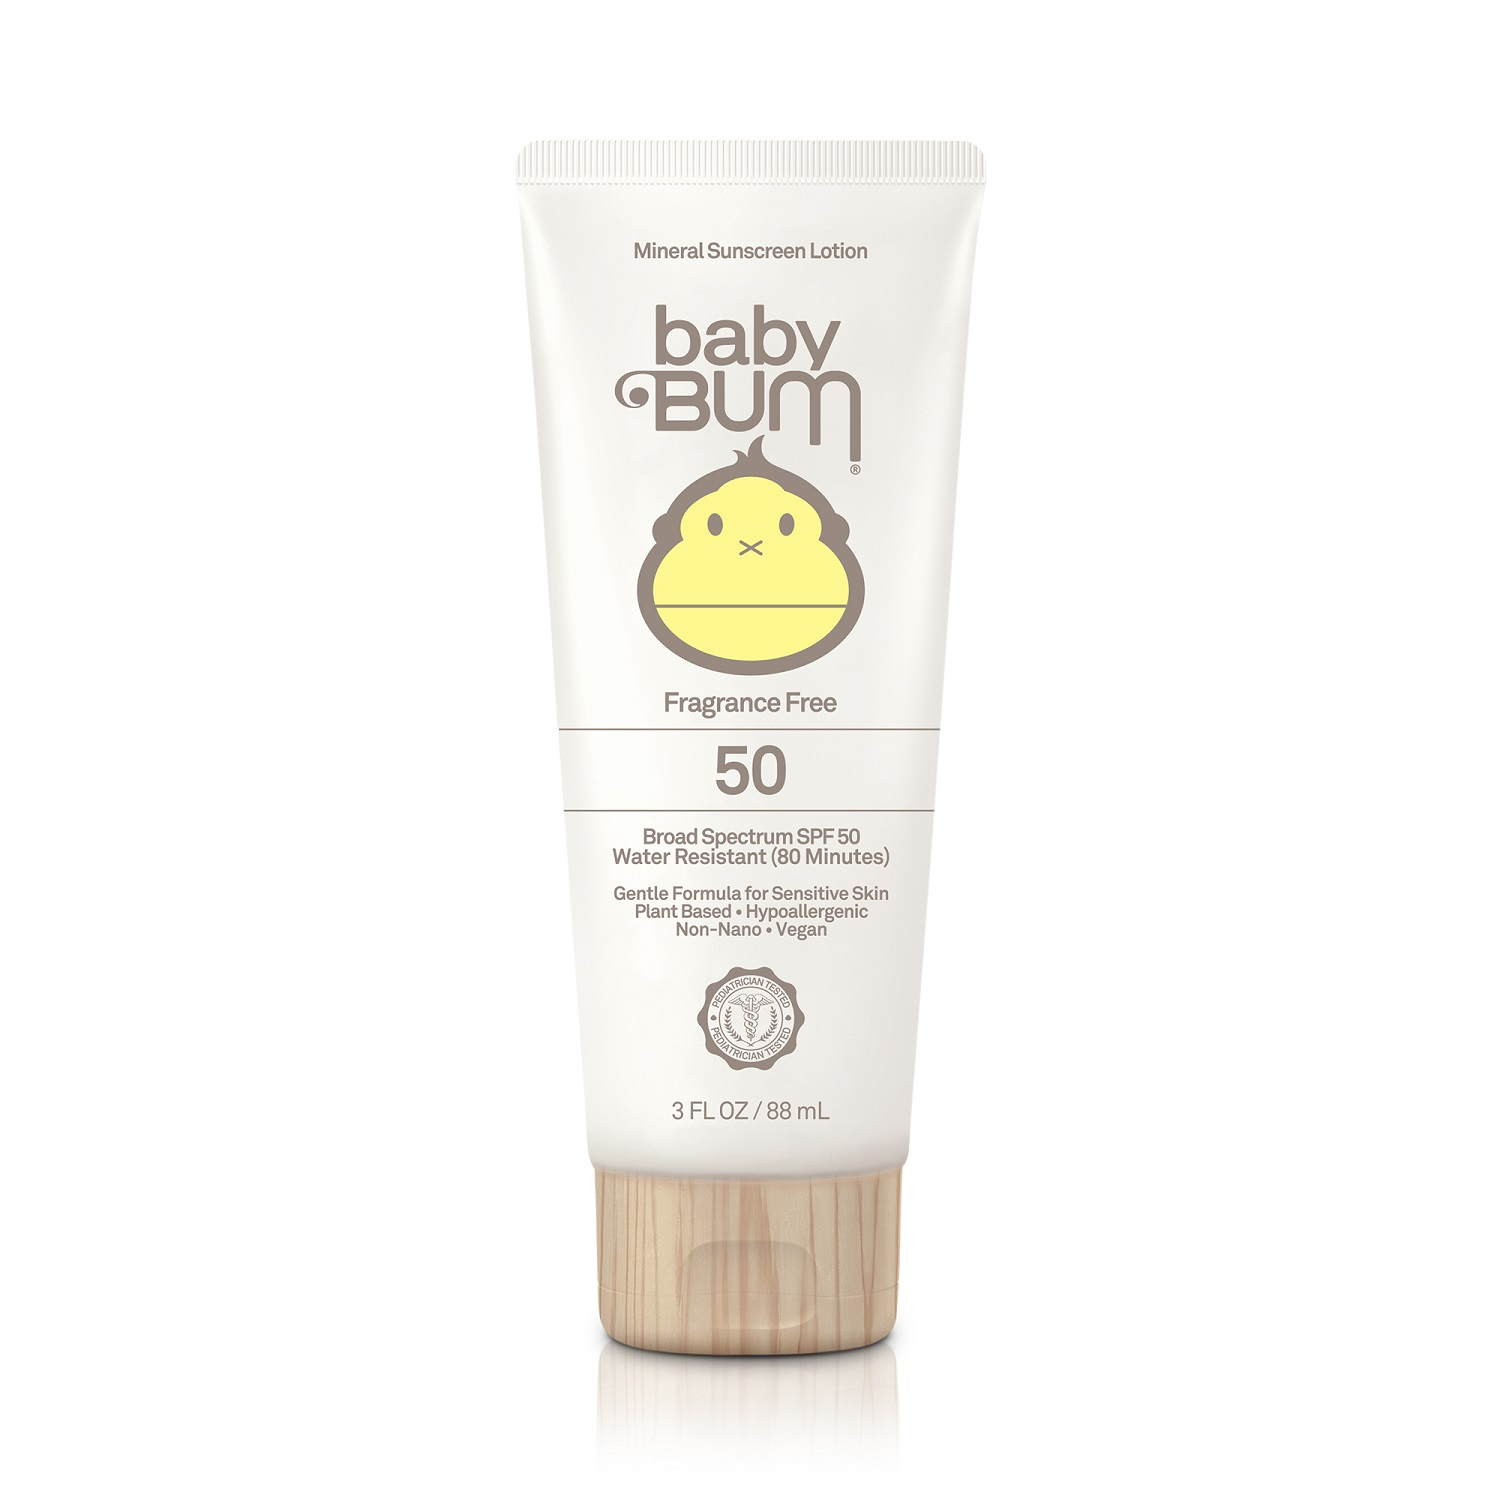 Sun Bum baby Bum 50 Mineral Sunscreen Lotion Broad Spectrum SPF 50 [Fragrance Free] (3.0 fl oz / 88 ml)